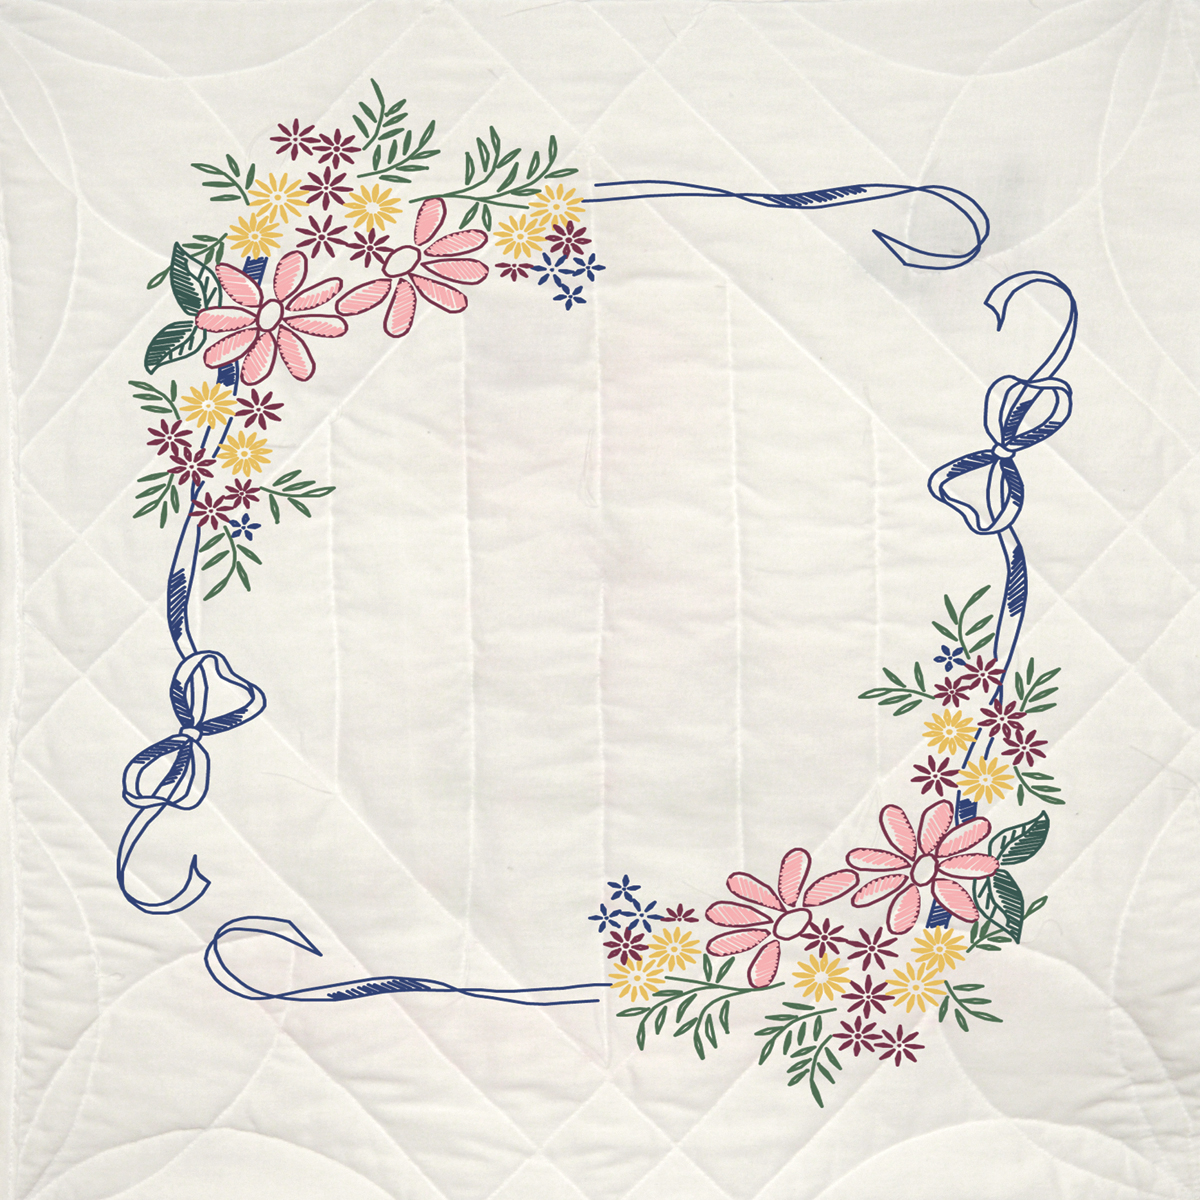 Stamped Quilt Blocks 18 Inch X 18 Inch 6/Pkg-Ribbon & Flowers